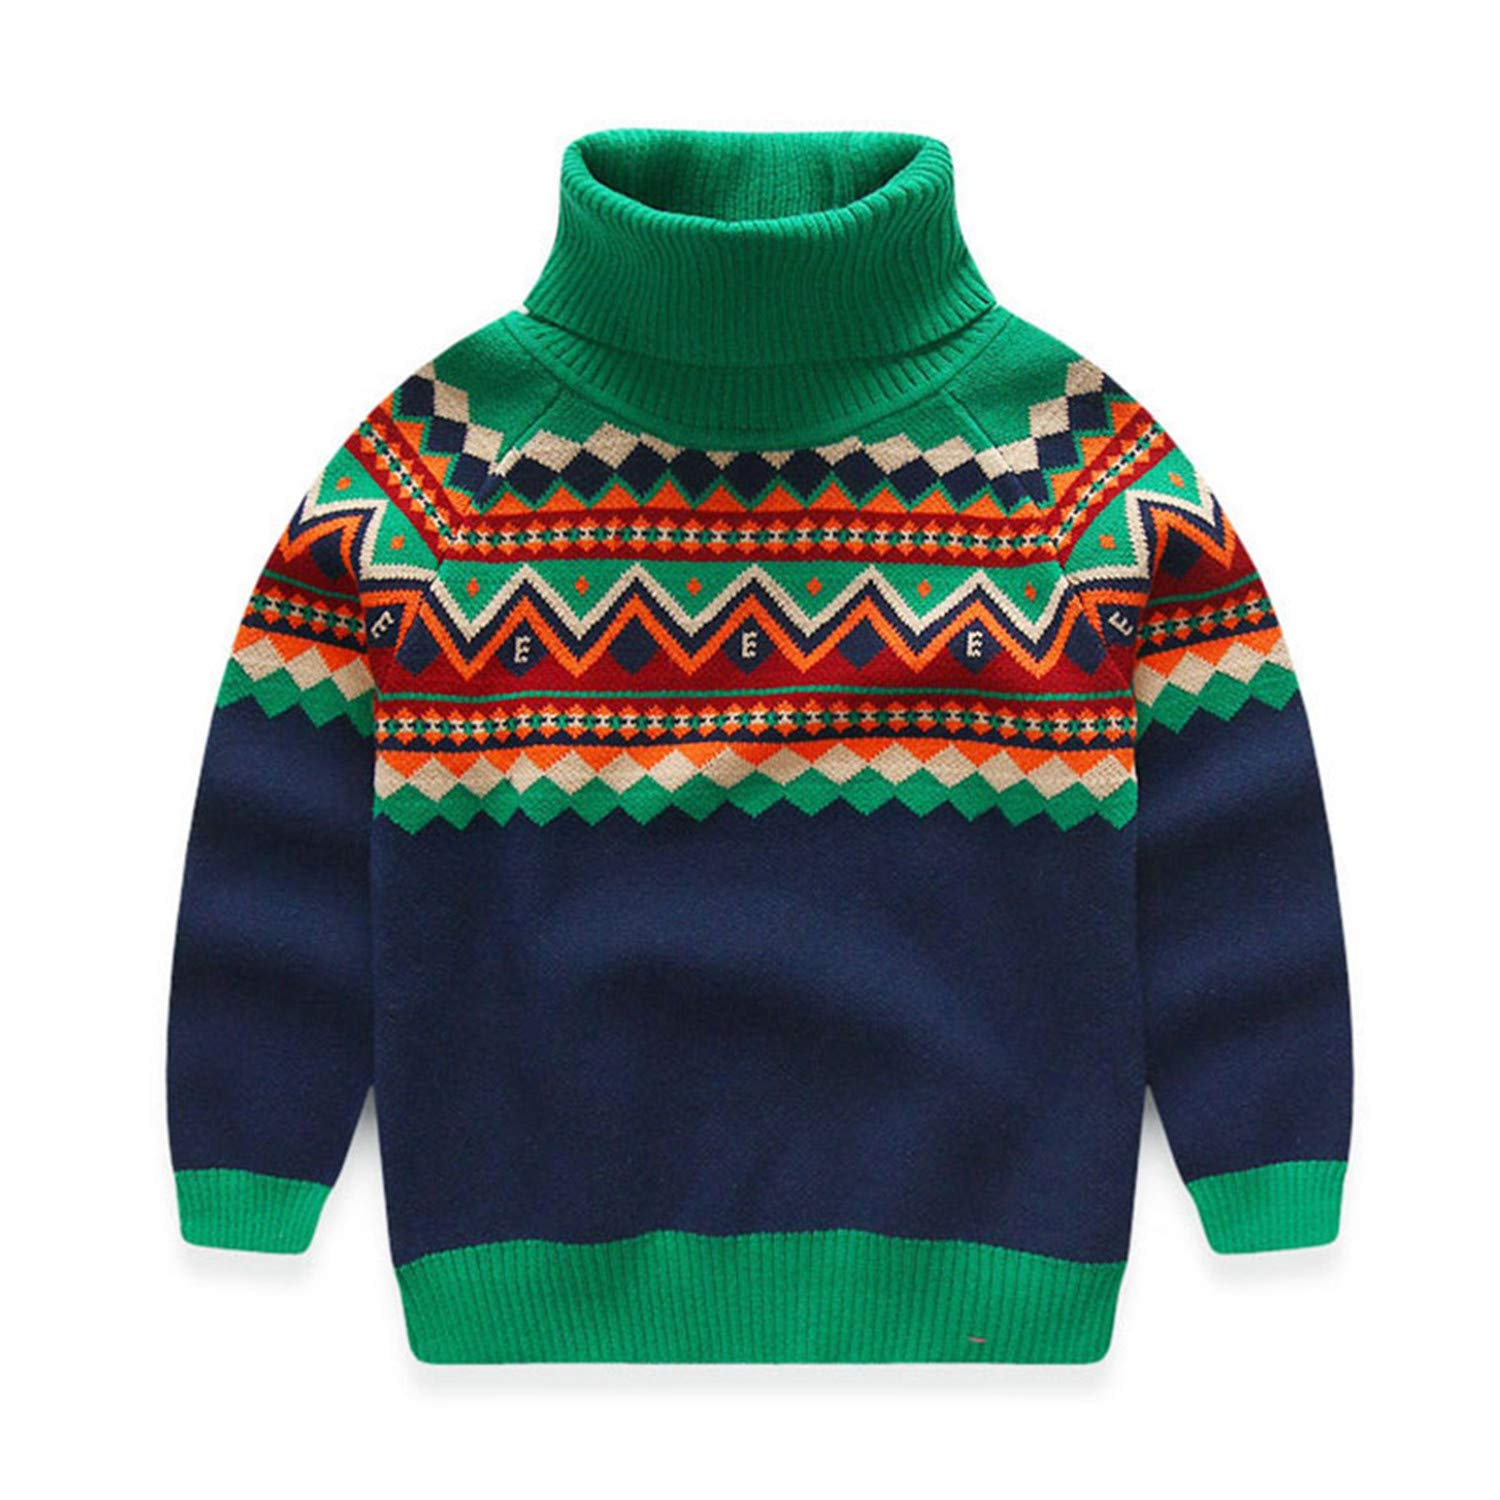 Warm 3-12 Years Teenage Thick High Neck Knitted Sweater for Boy